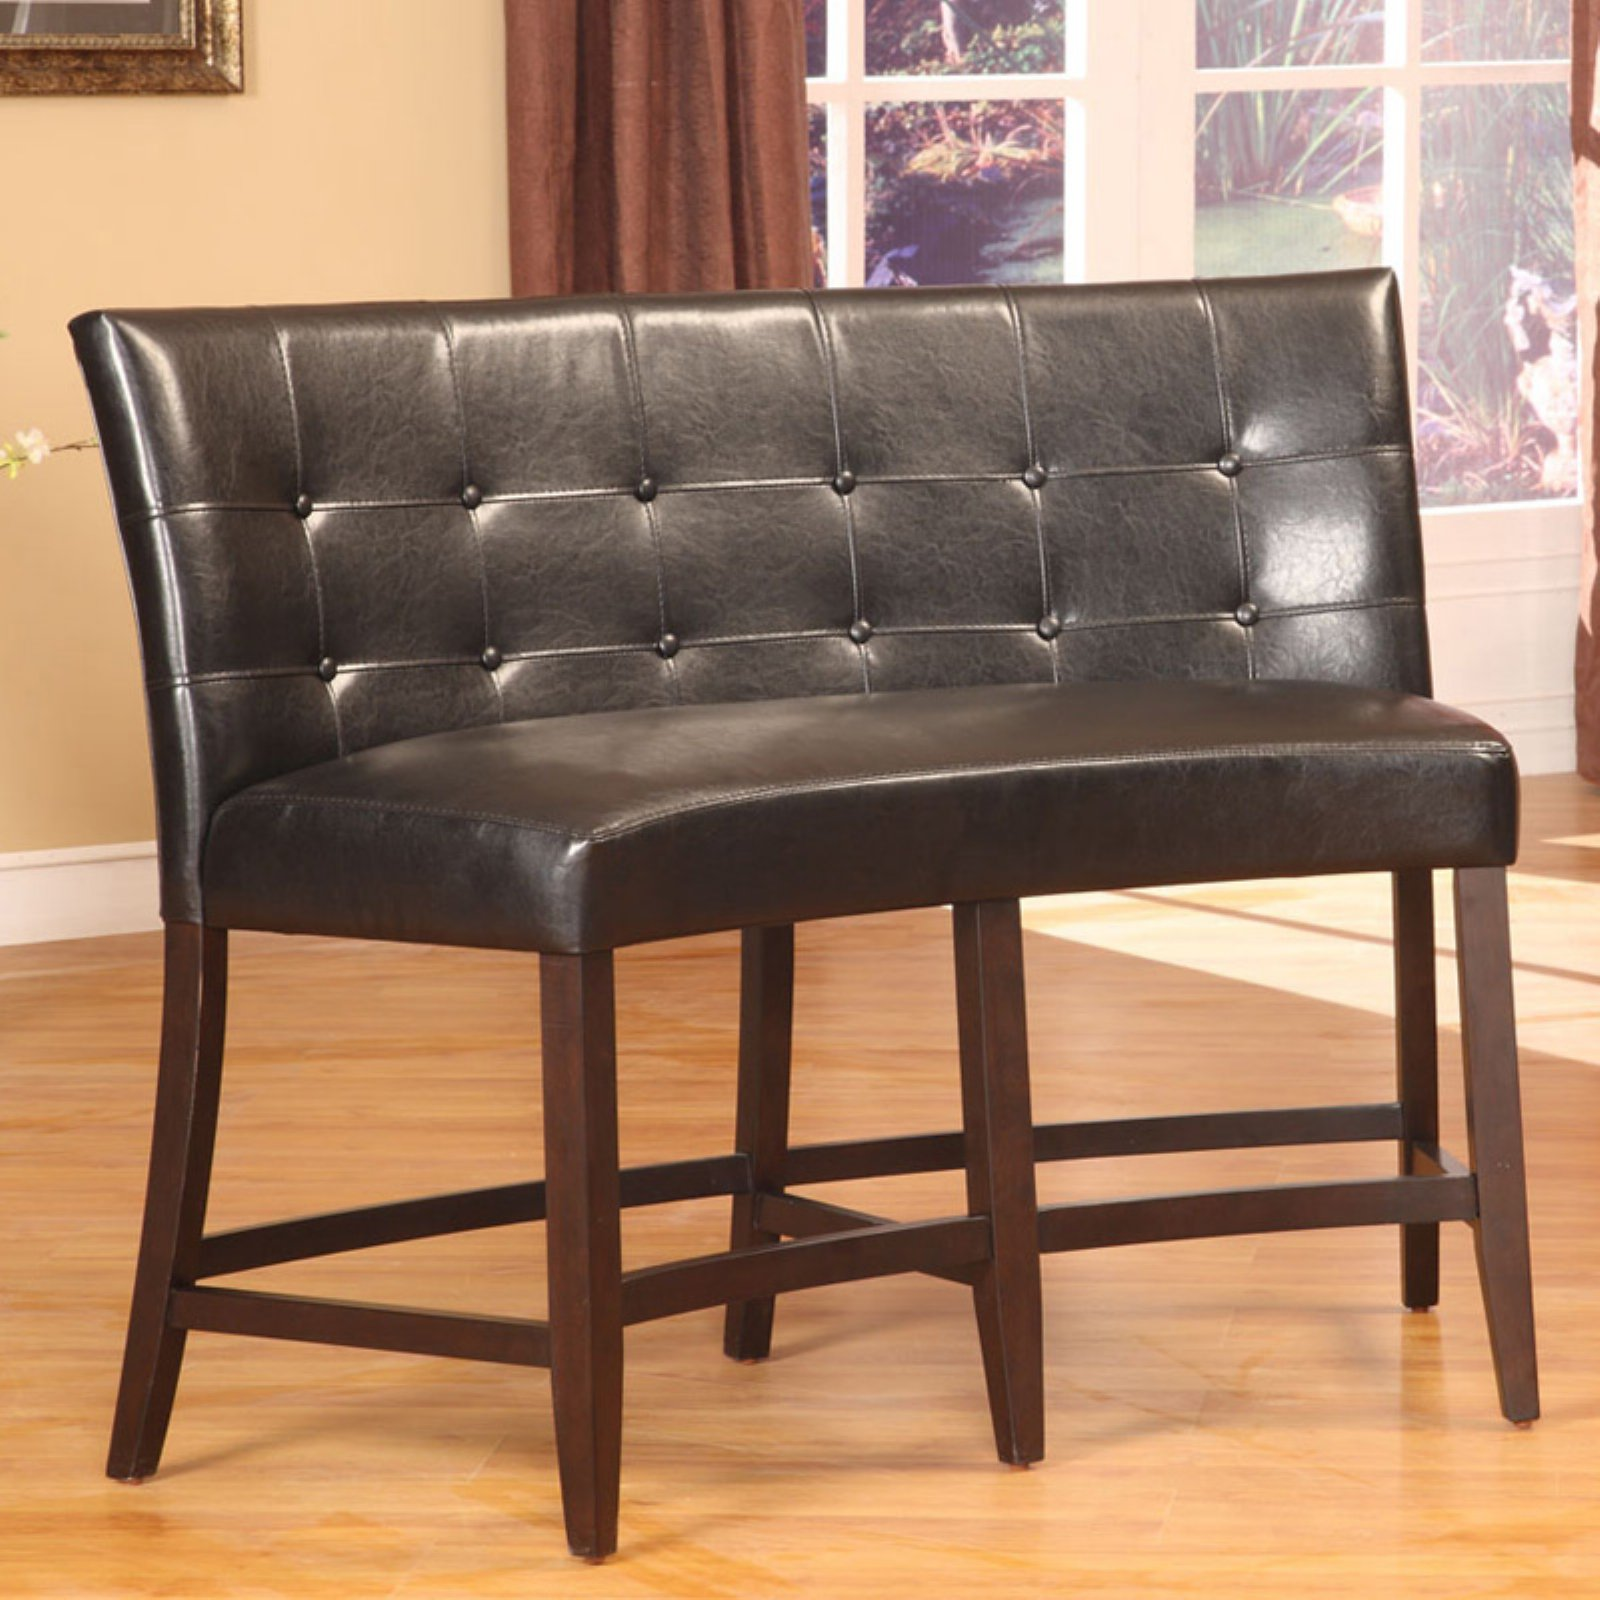 Bossa Counter Height Banquette - Black Leatherette